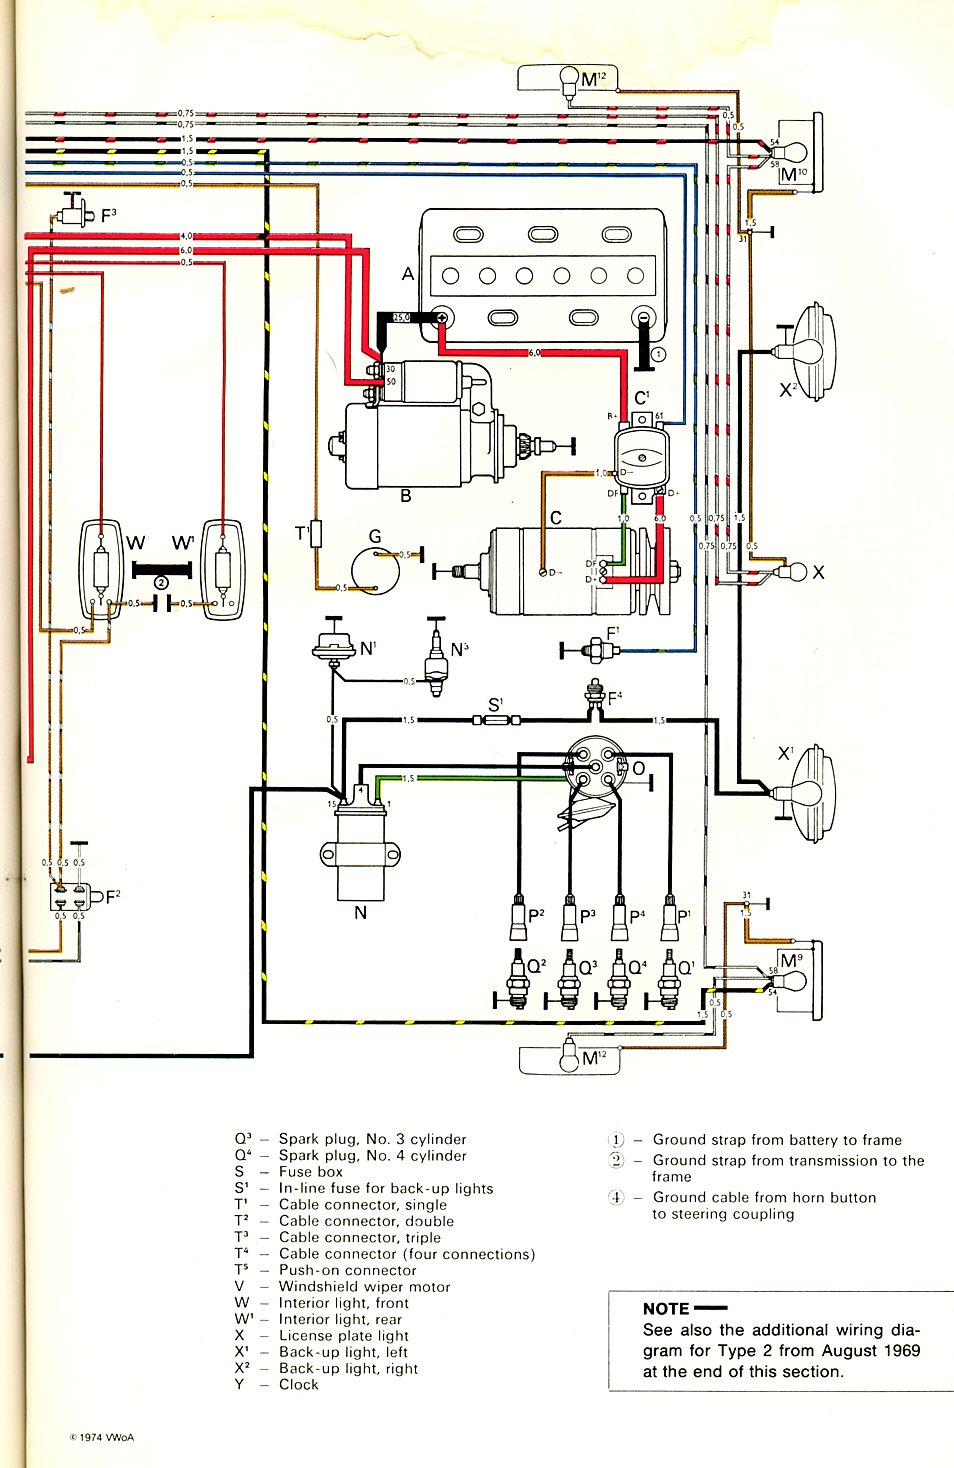 Type 2 Wiring Diagrams Vw Beetle Diagram Light